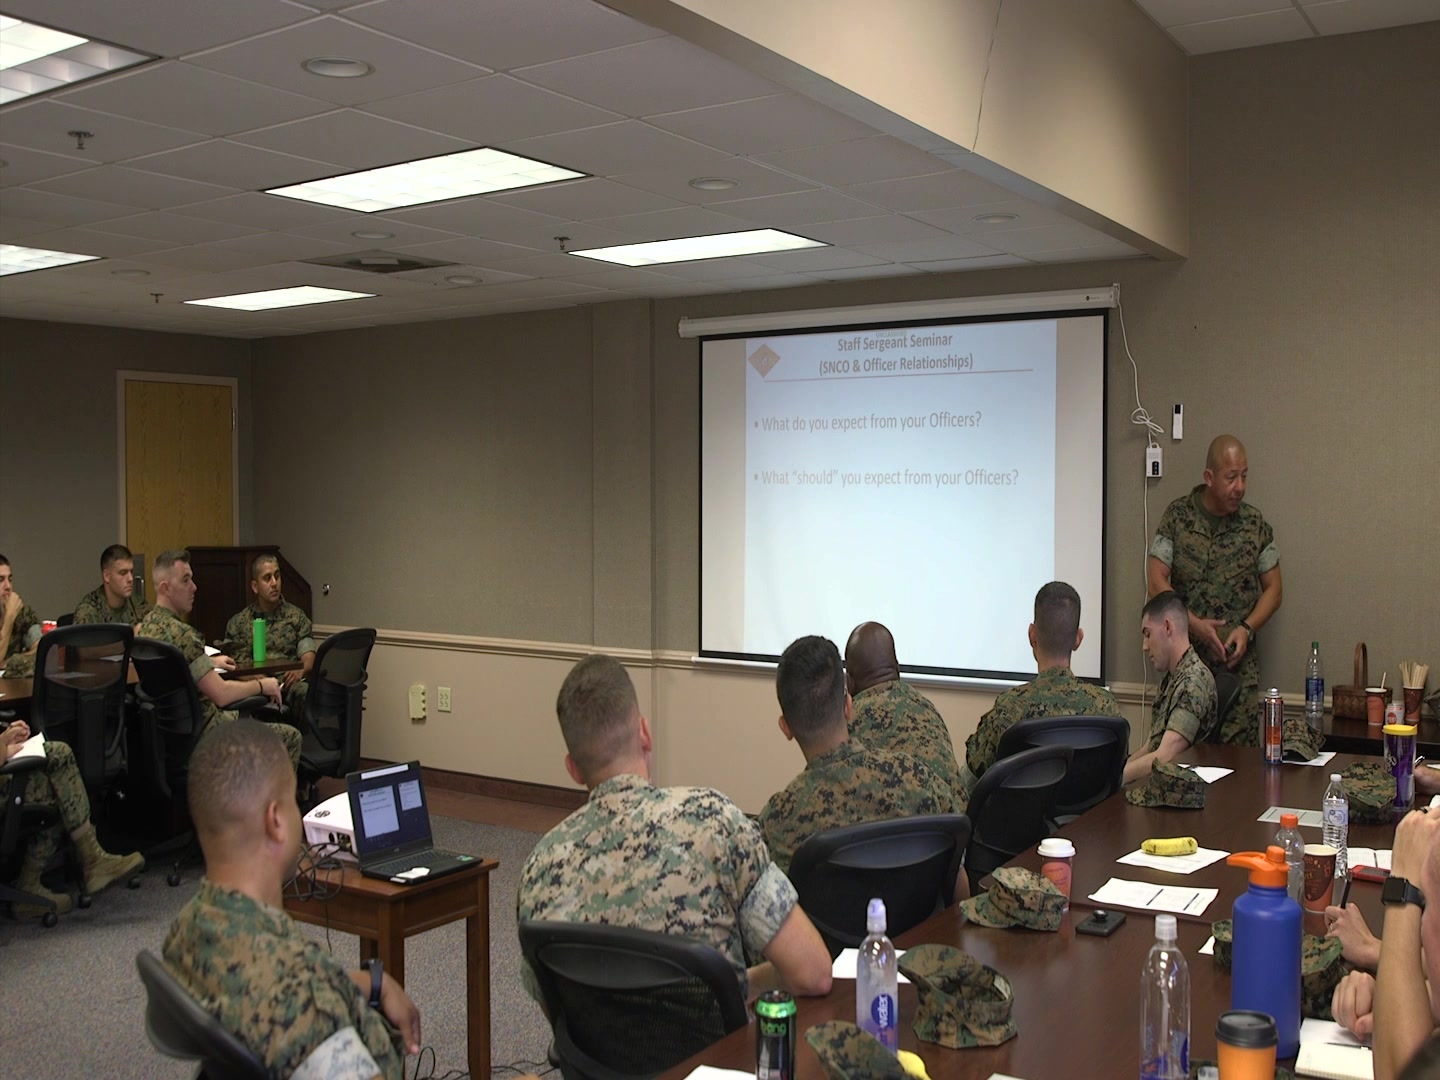 Sgt. Maj. Valdemar Cambunga led a seminar for staff sergeants selects at Marine Corps Air Station Beaufort, S.C., on September 19, 2019. The seminar was created to help non-commissioned officers transition to staff non-commissioned officers by giving them the skills and knowledge that is expected of them as an SNCO. Cambunga is the sergeant major of Marine Air Support Squadron 1, Marine Air Control Group 28, 2nd Marine Aircraft Wing. (U.S. Marine Corps video by Pfc. Gavin Umboh)